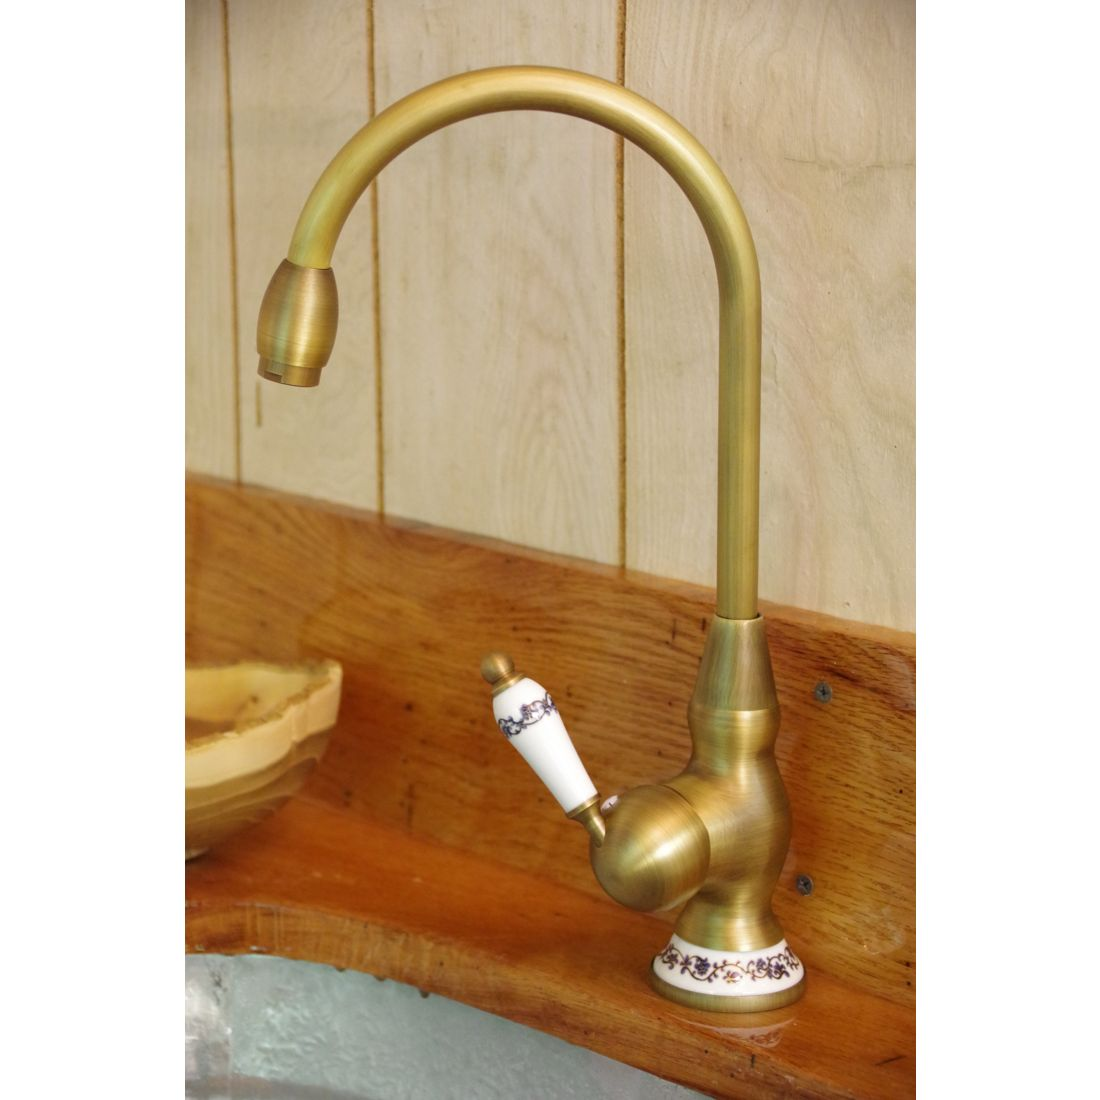 Ceramic Handle Antique Brass Faucet Arch Type Wisemen Trading And Supply